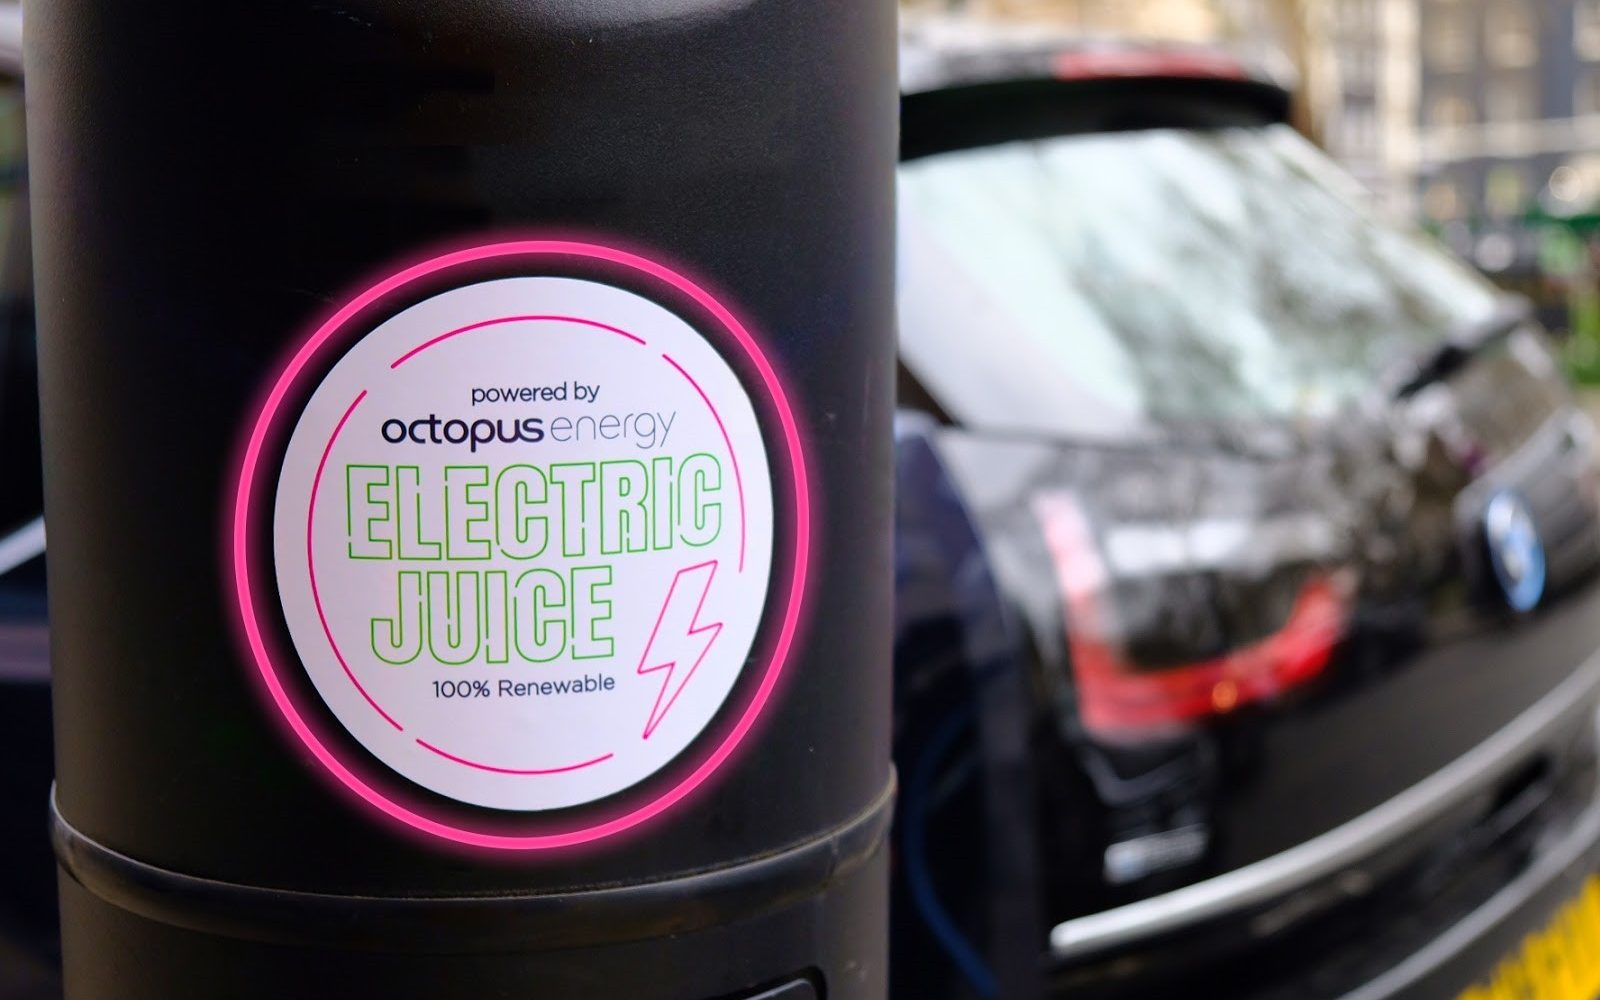 Image: Electric Juice.